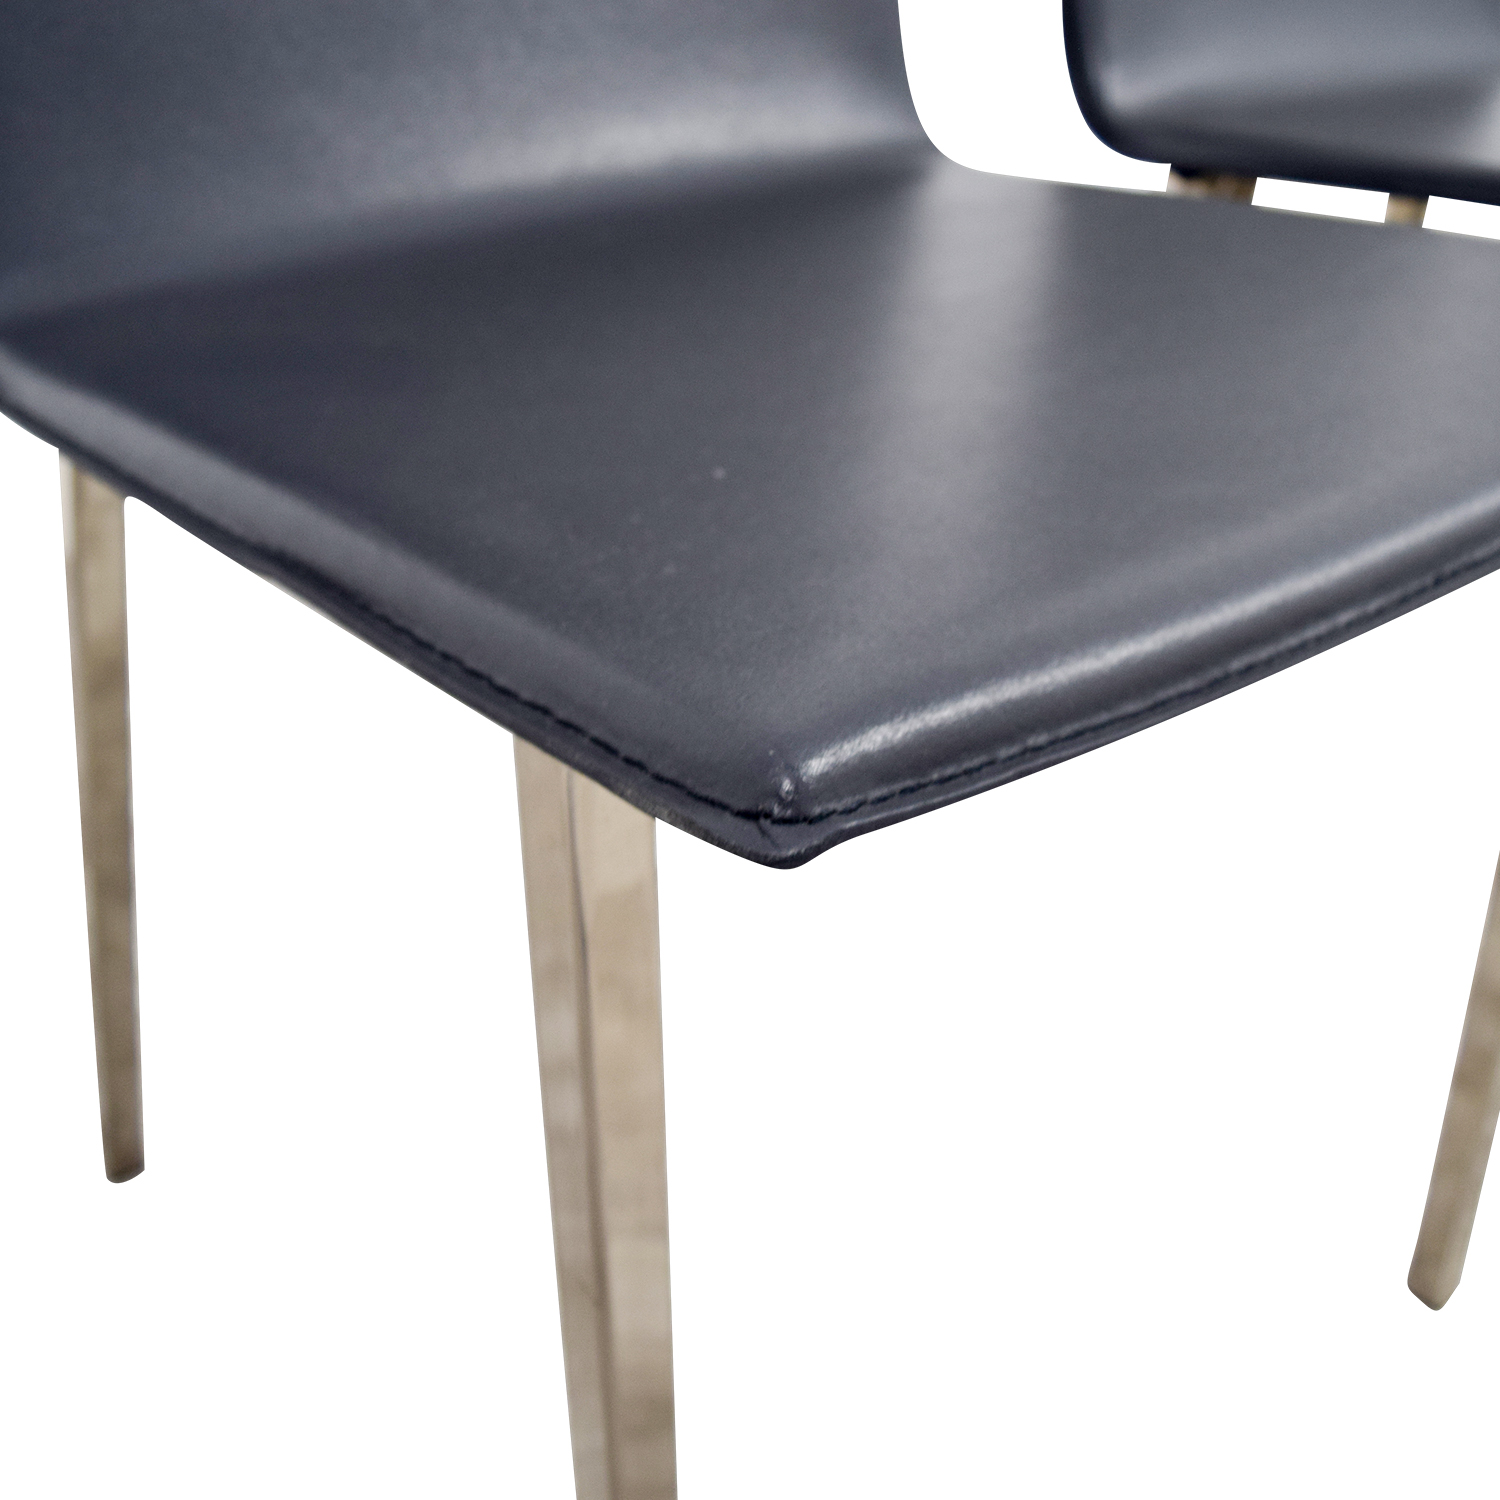 CB2 CB2 Grey Leather Chairs Dining Chairs